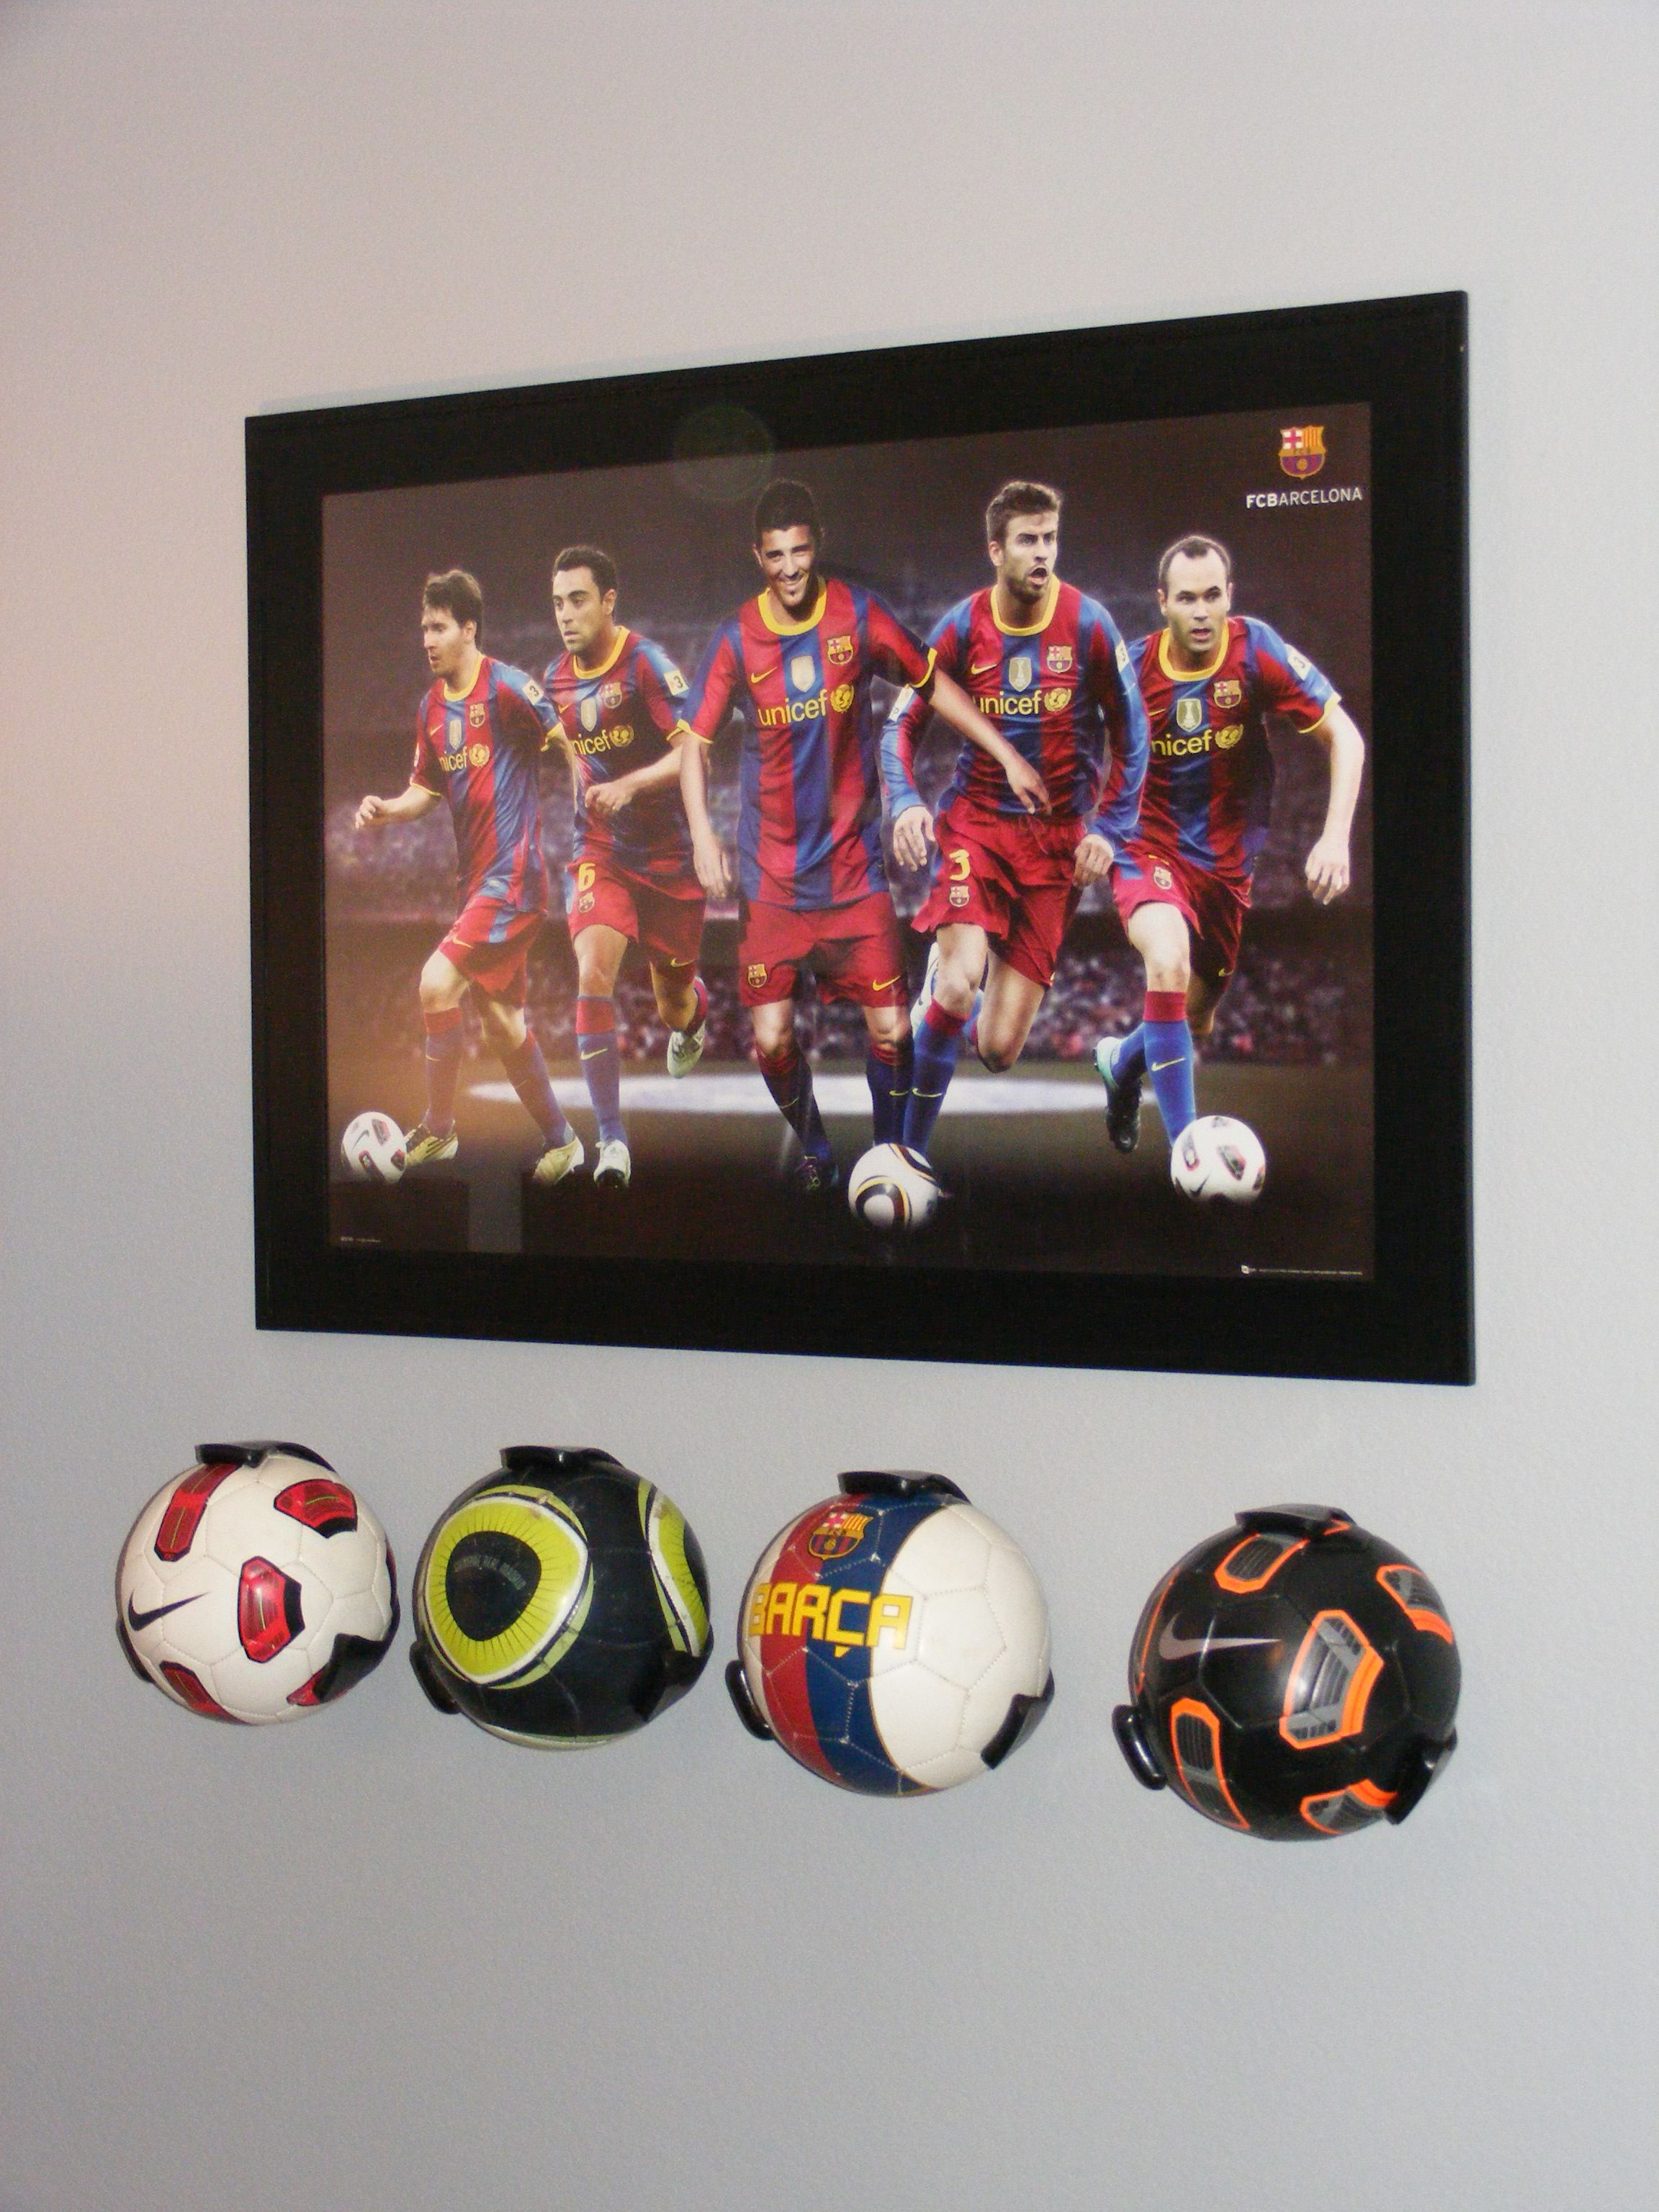 Mac S Room Cool Soccer Ball Holders From The Container Called Claws